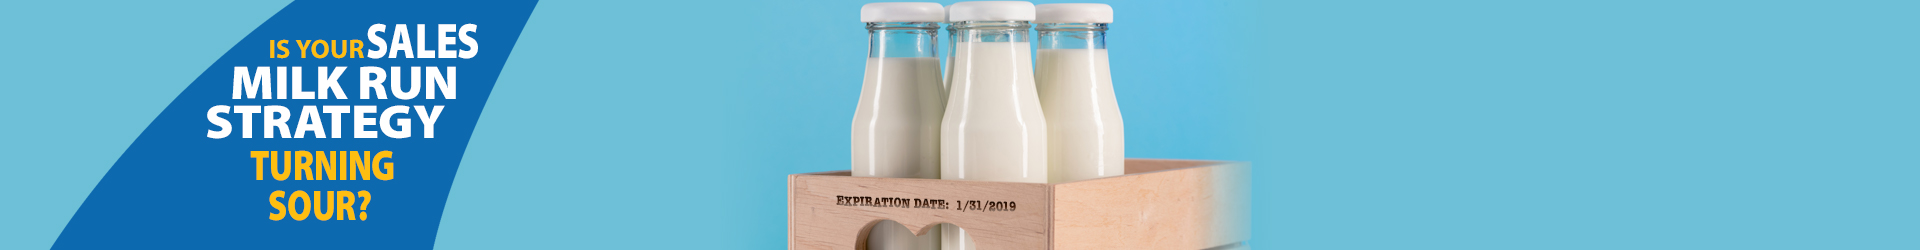 Is your sales milk run strategy turning sour?